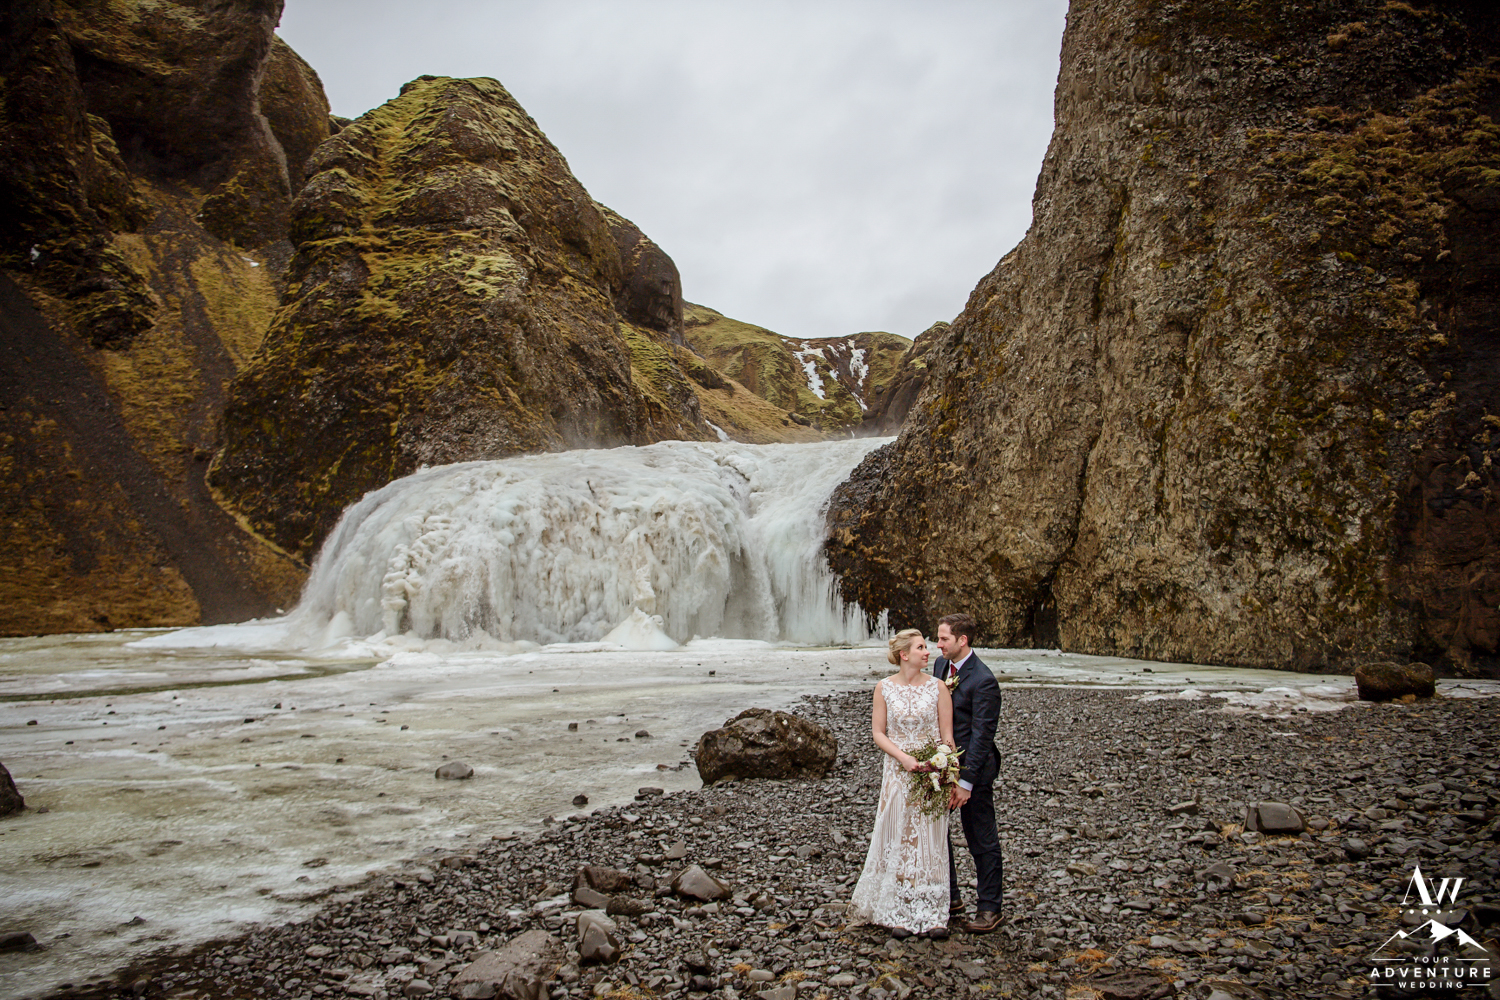 Romantic Iceland Wedding photos at the frozen waterfall